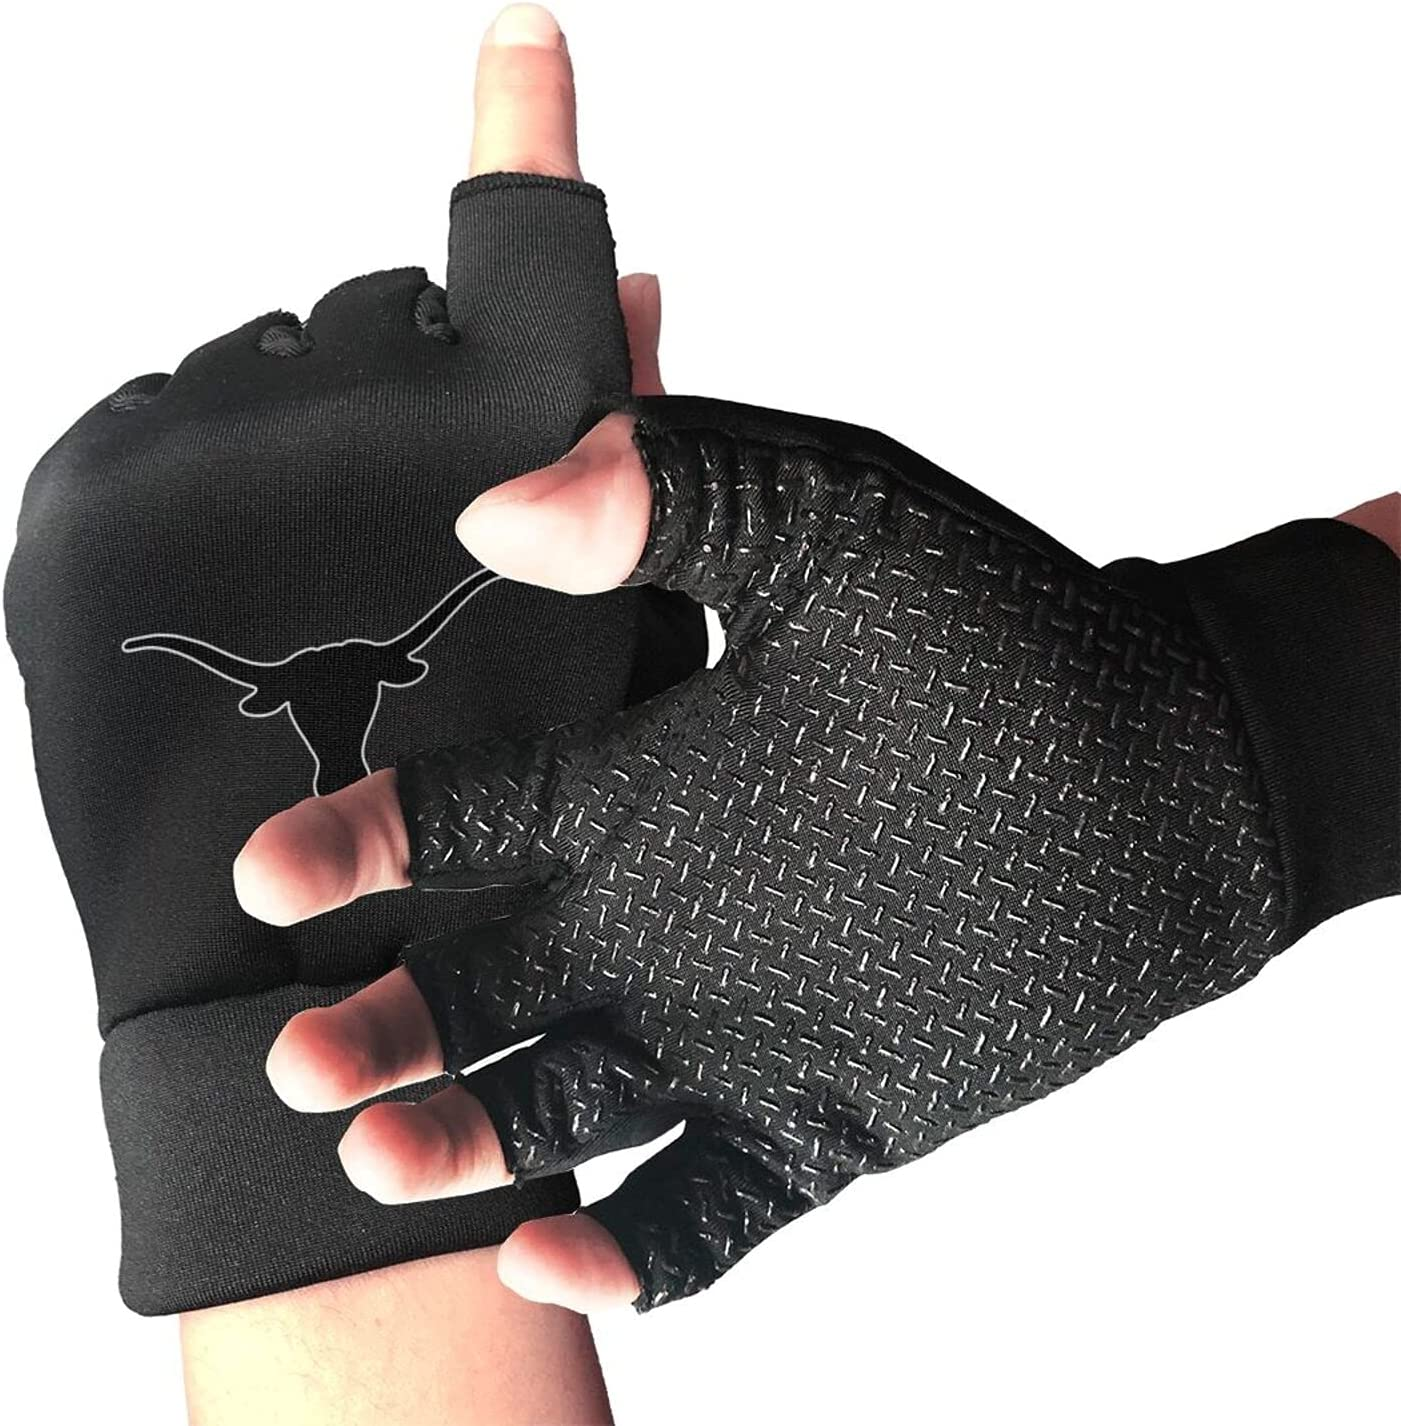 Longhorns Design Today's only Art Sports Gloves Exercise San Diego Mall Suitable for Unisex